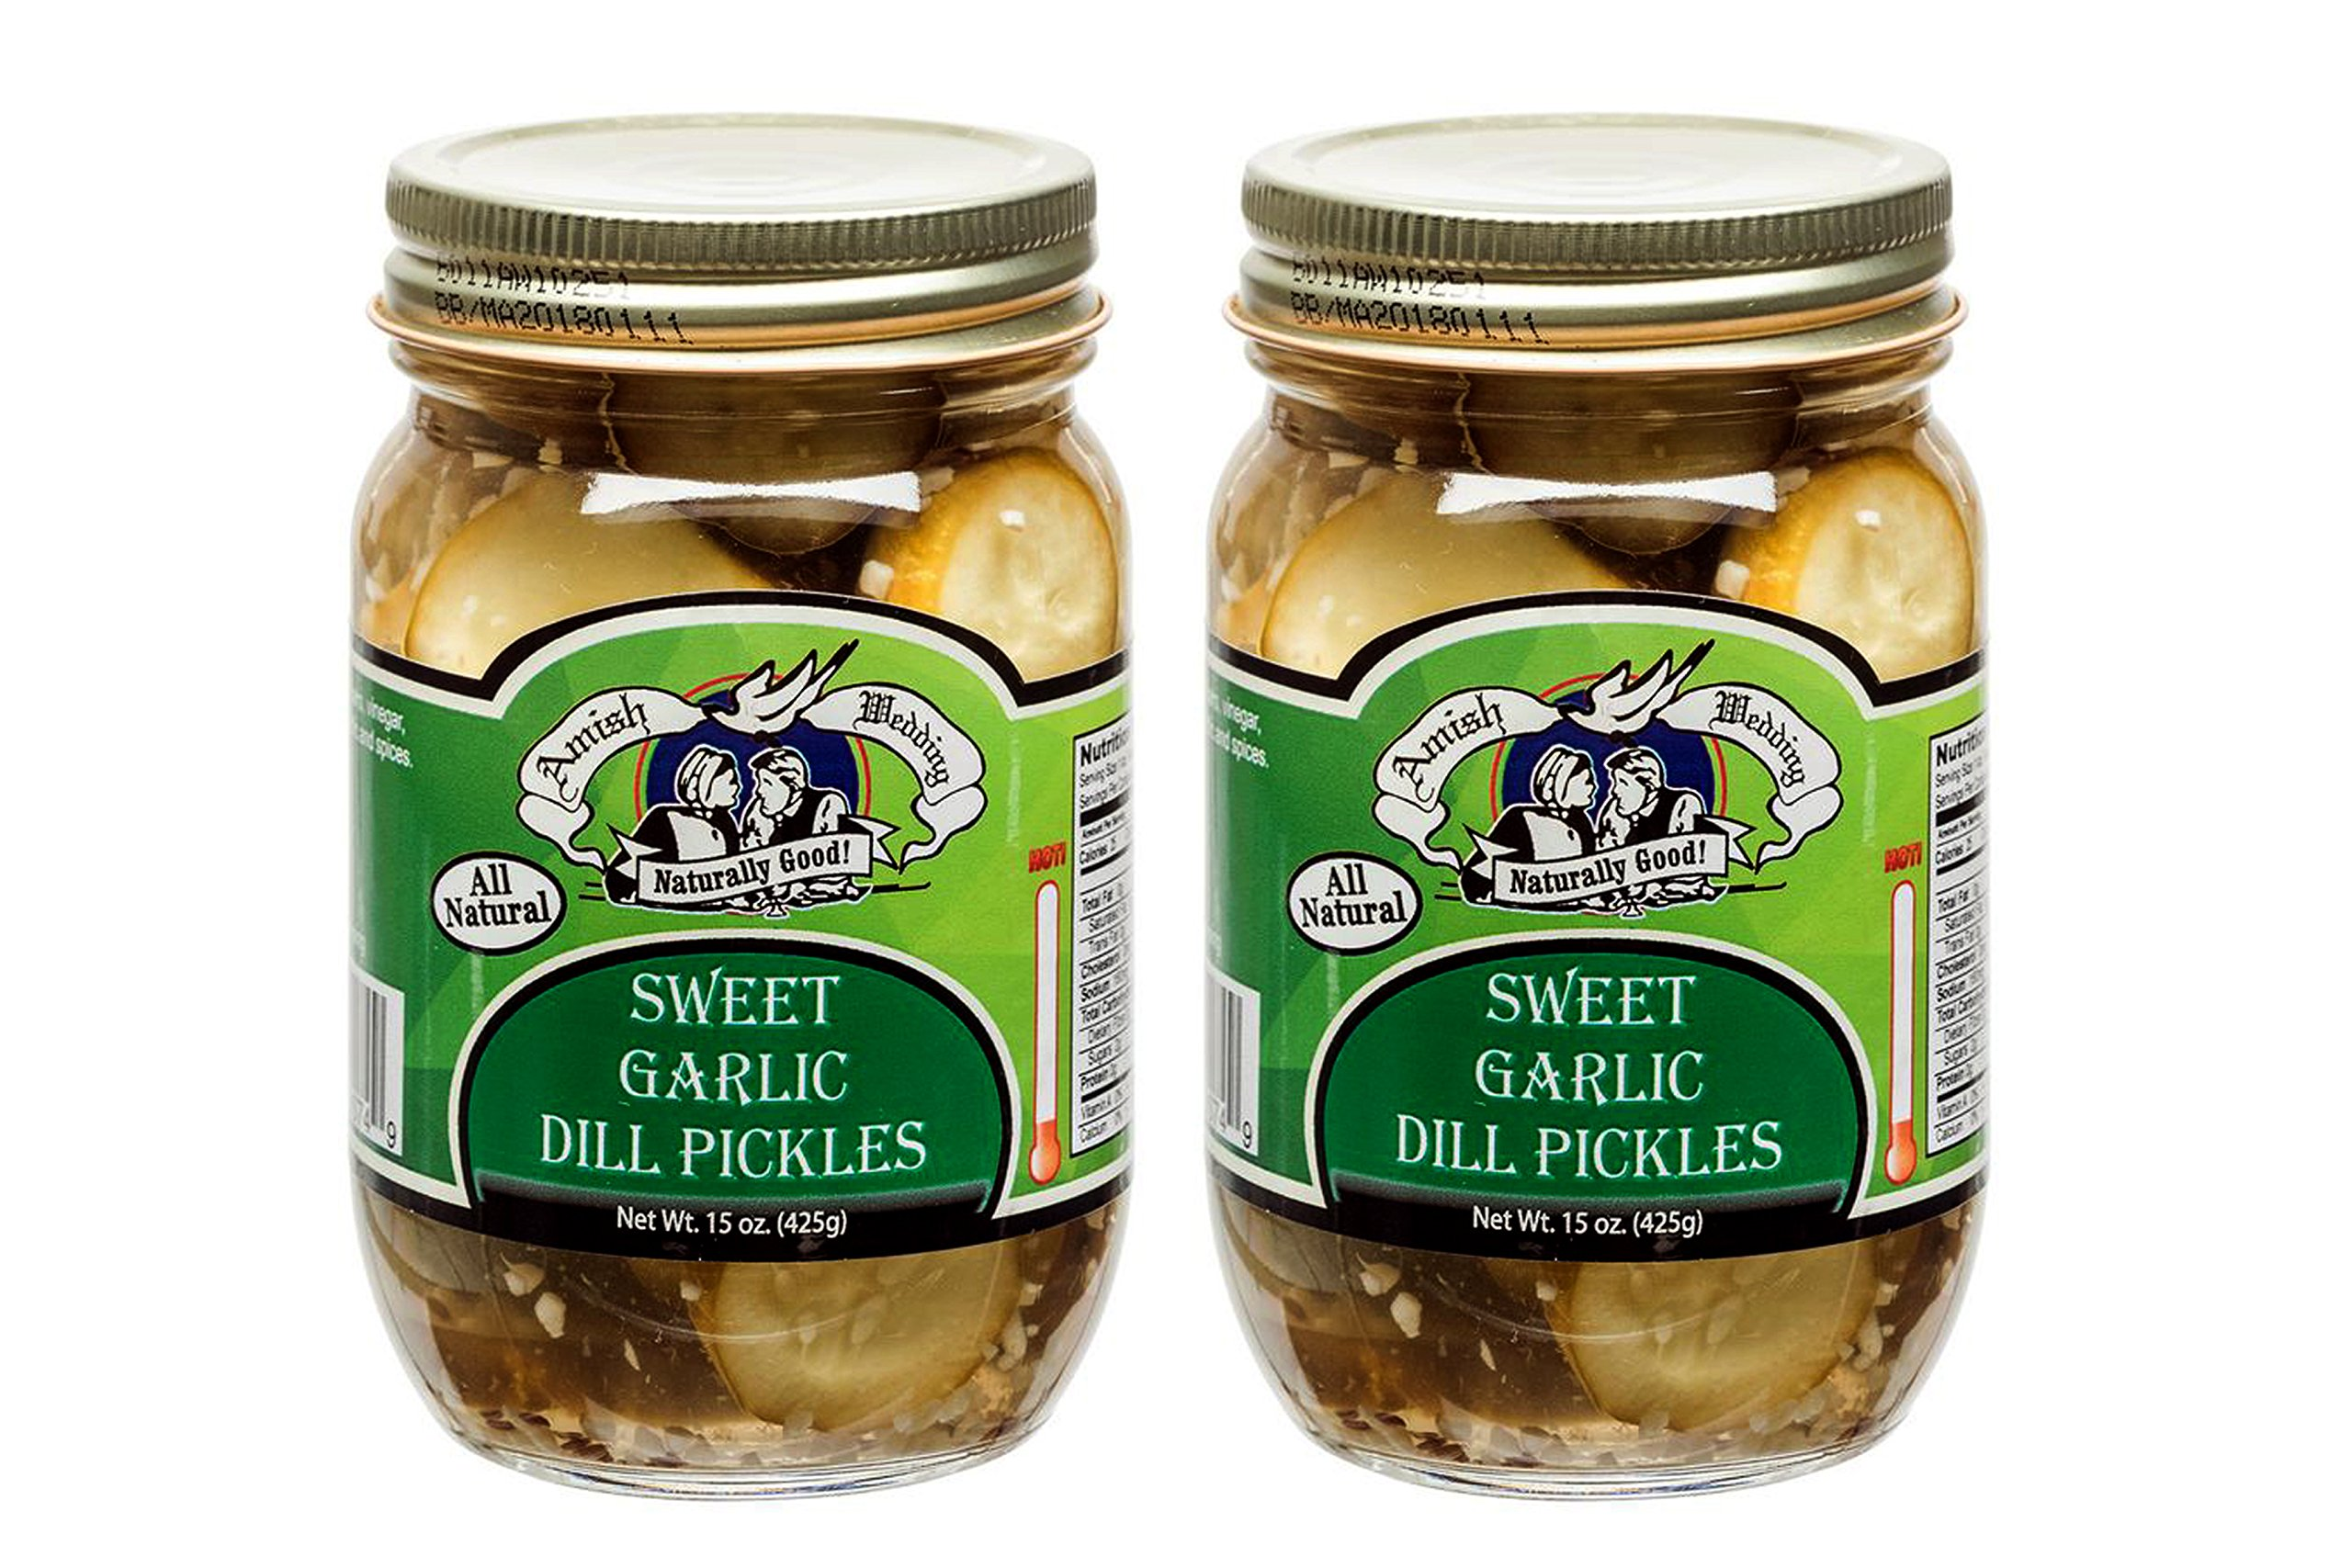 Amish Wedding Foods Sweet Garlic Dill Pickles 2 - 15 Oz Glass Quarts All Natural